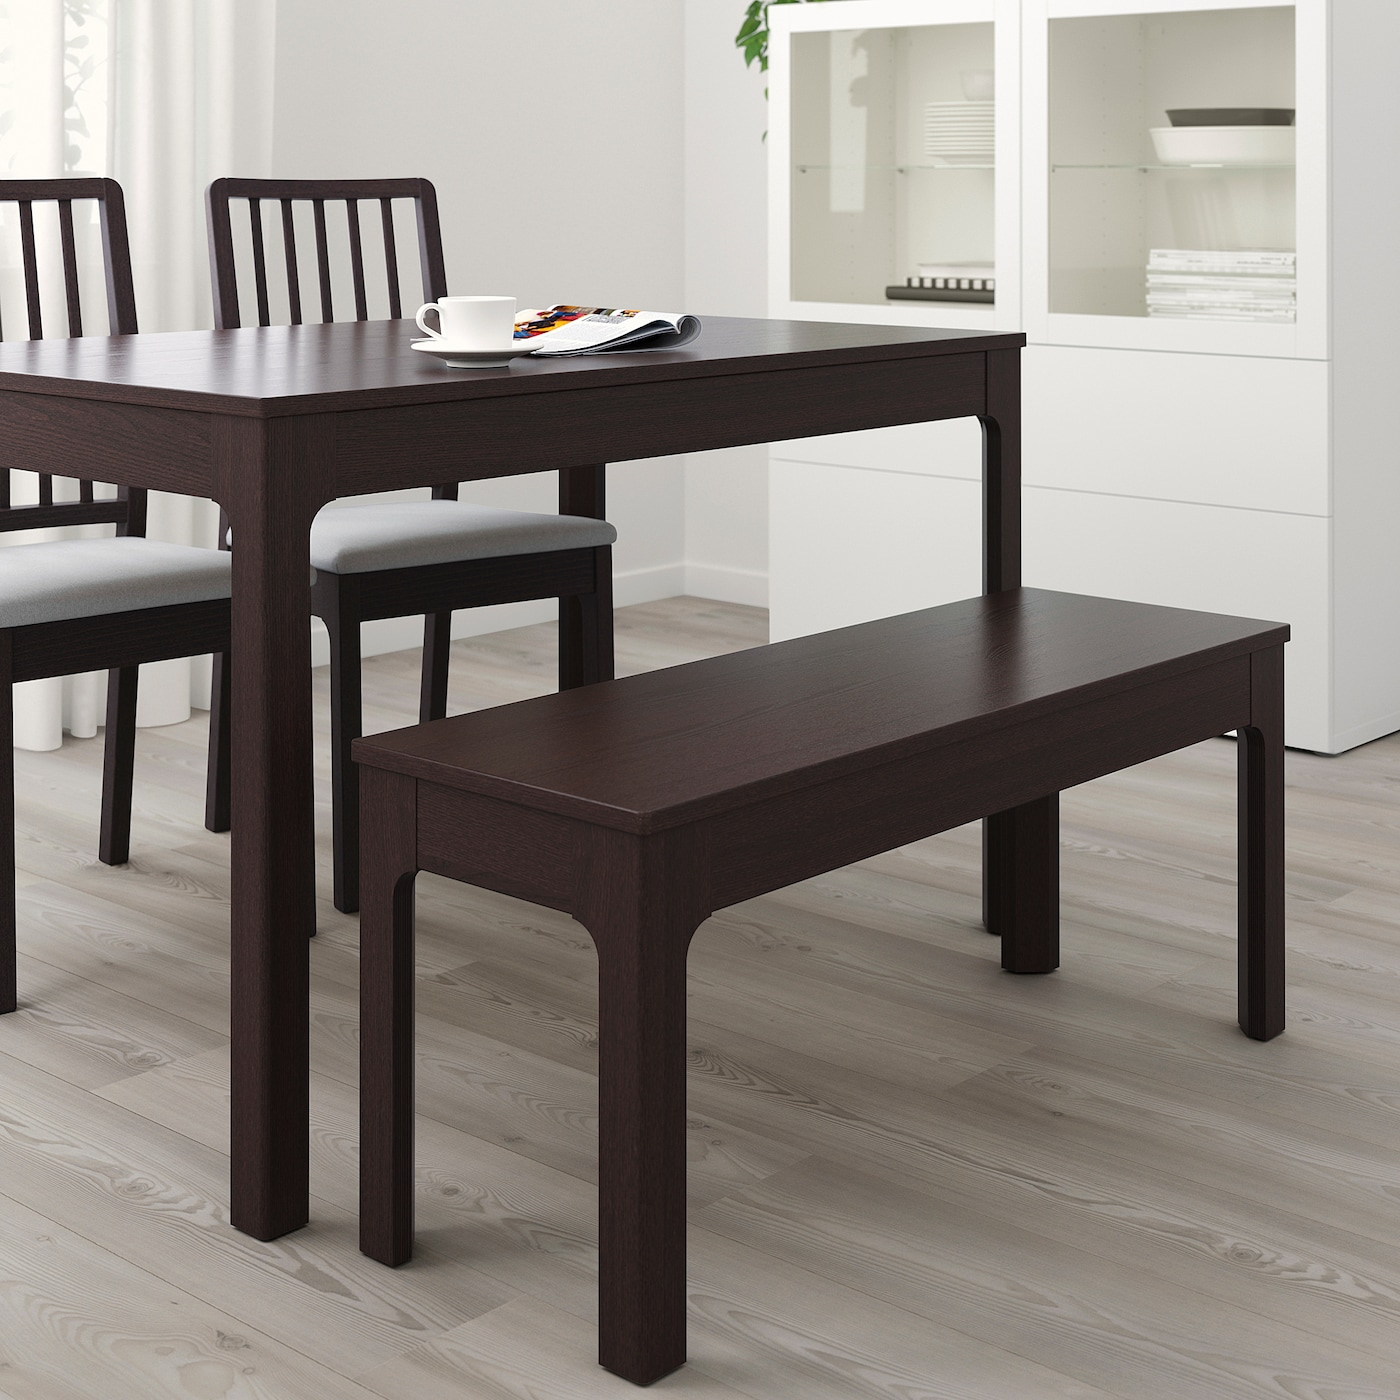 Ekedalen Bench Dark Brown Ikea